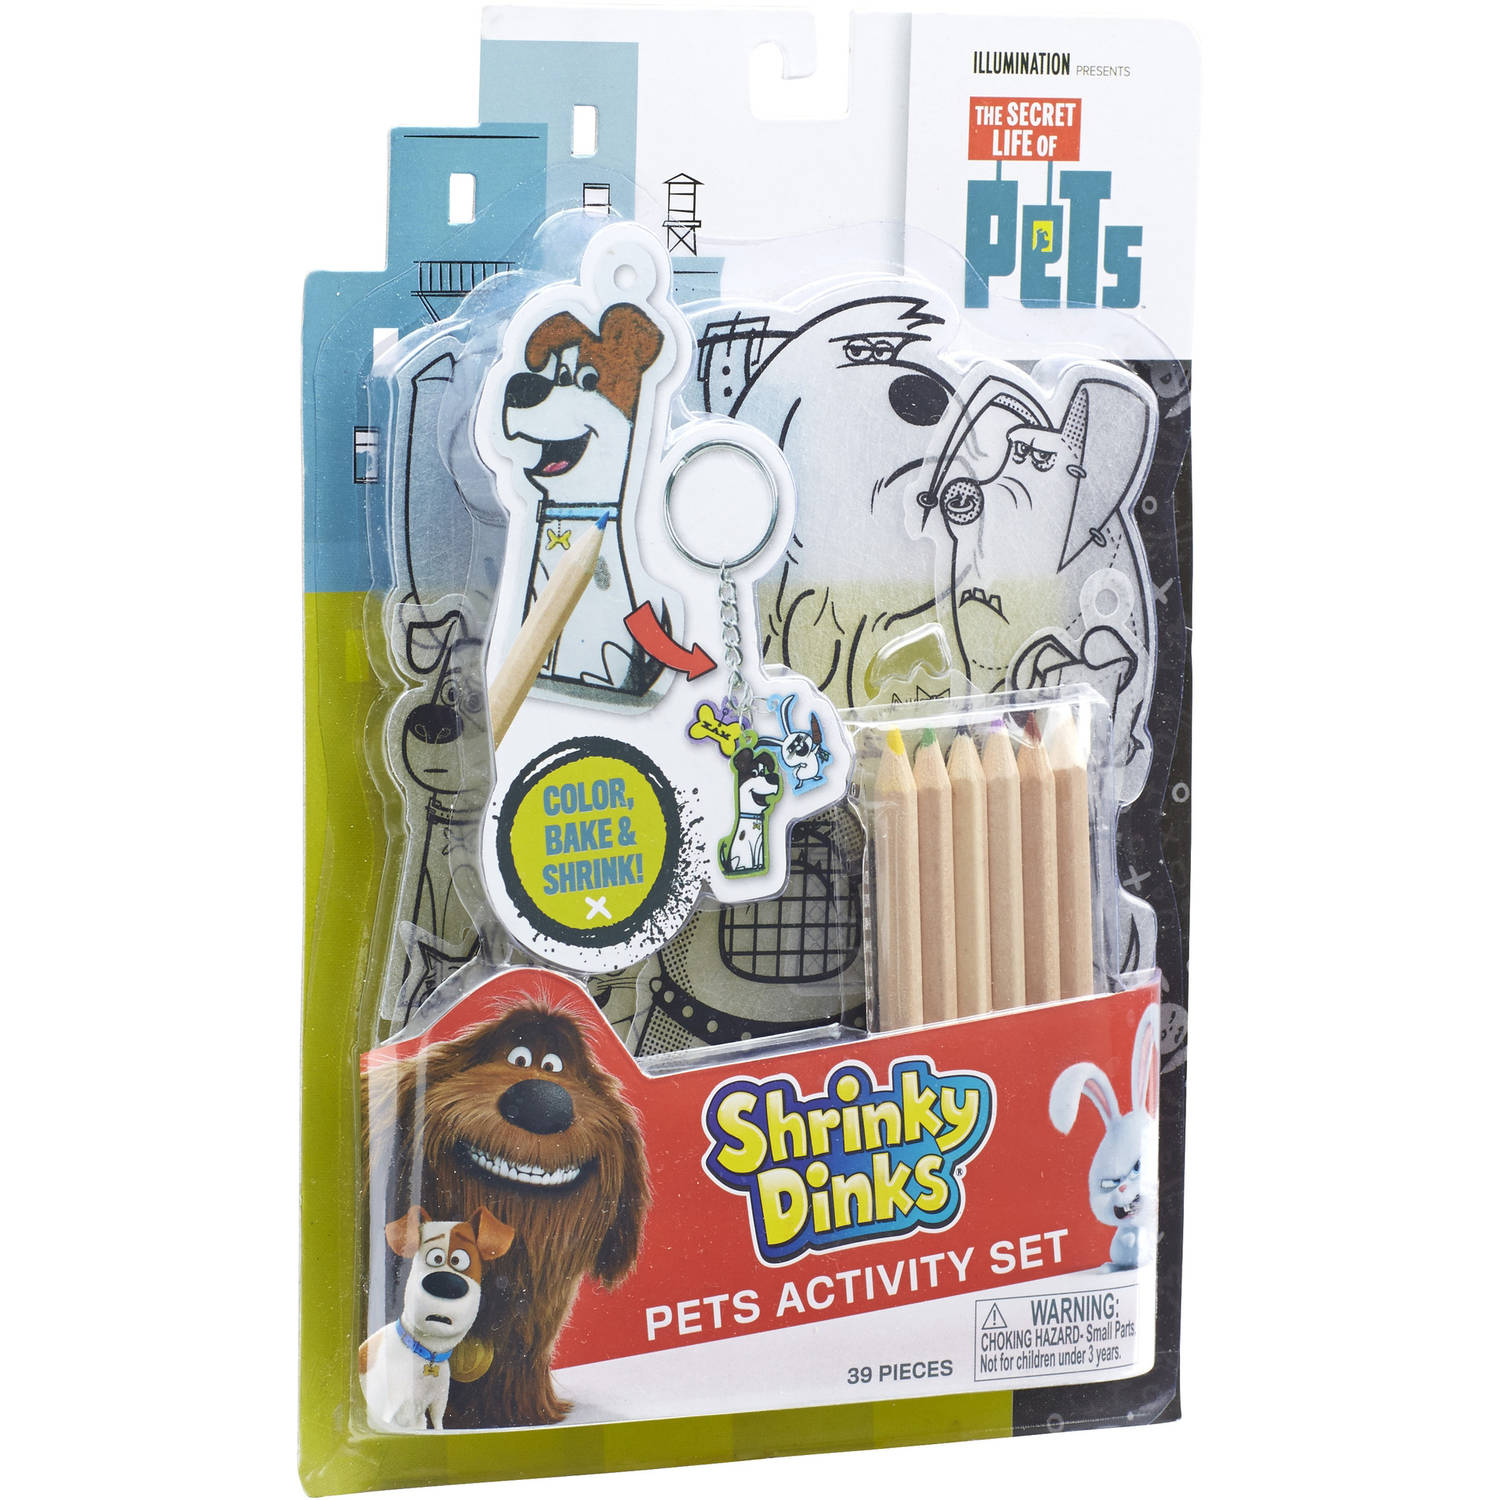 The Secret Life of Pets Shrinky Dinks Activity Set